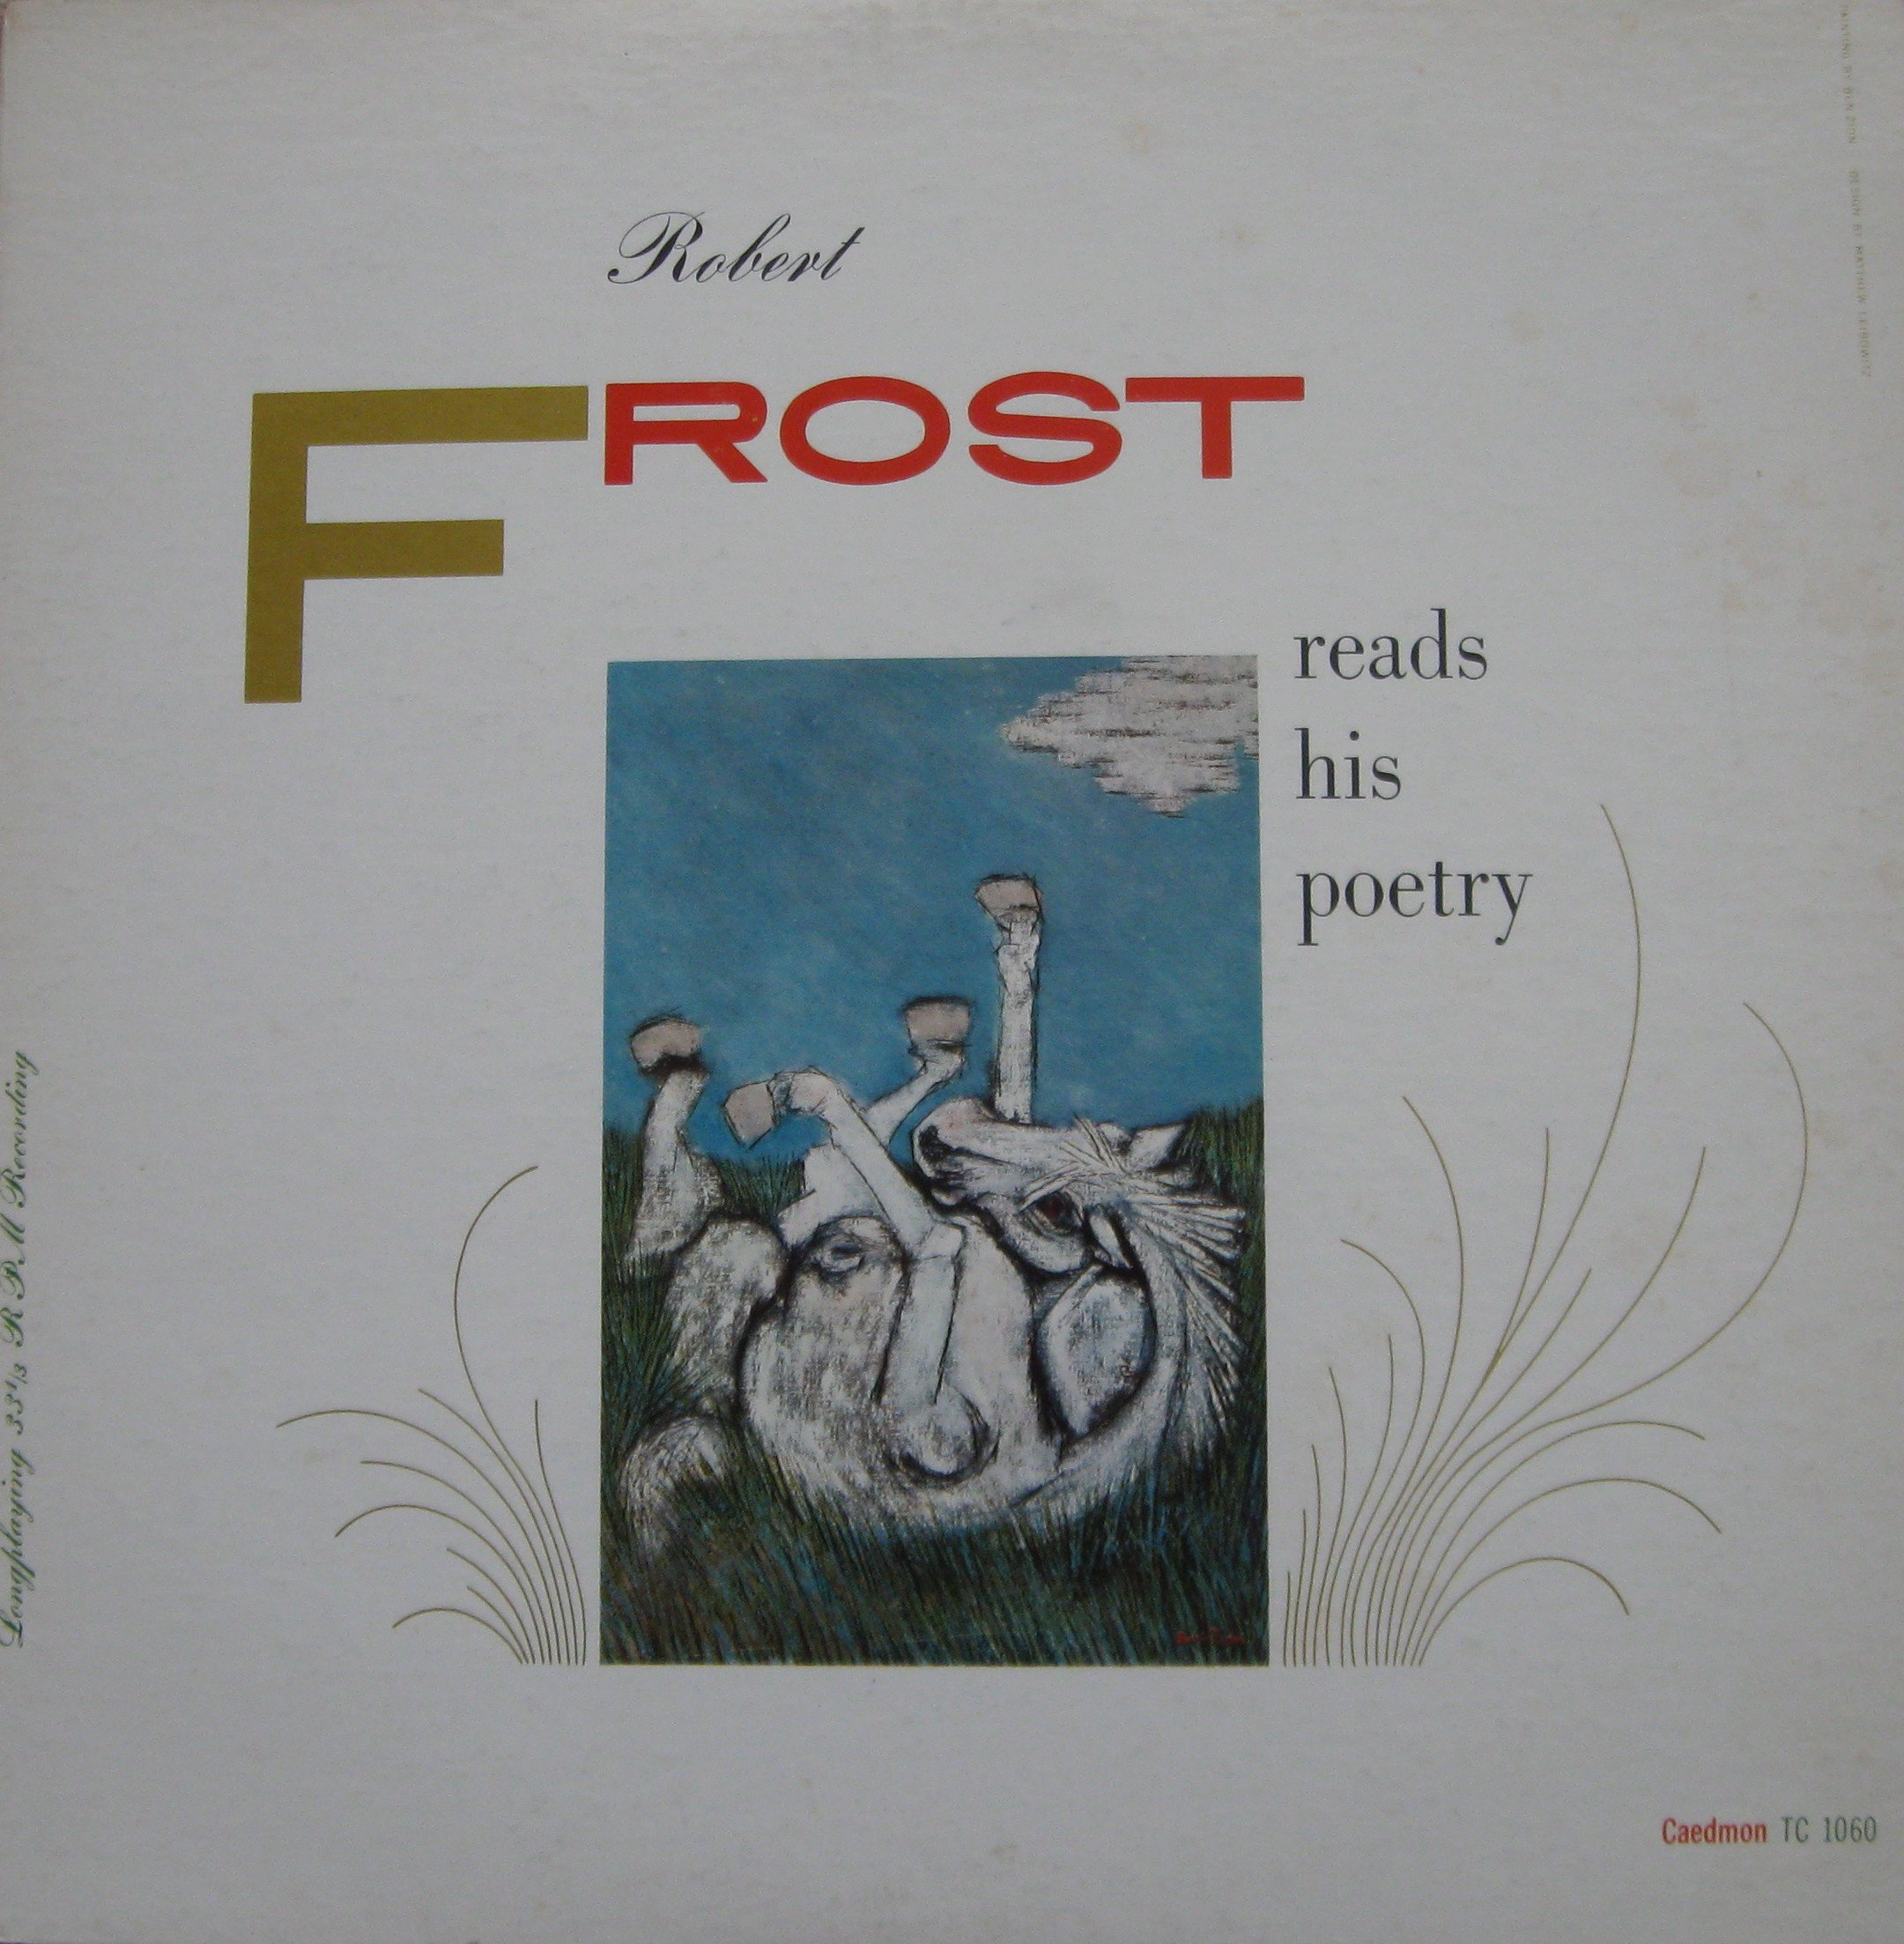 1956 Robert Frost Reads His Poetry Vinyl LP Record